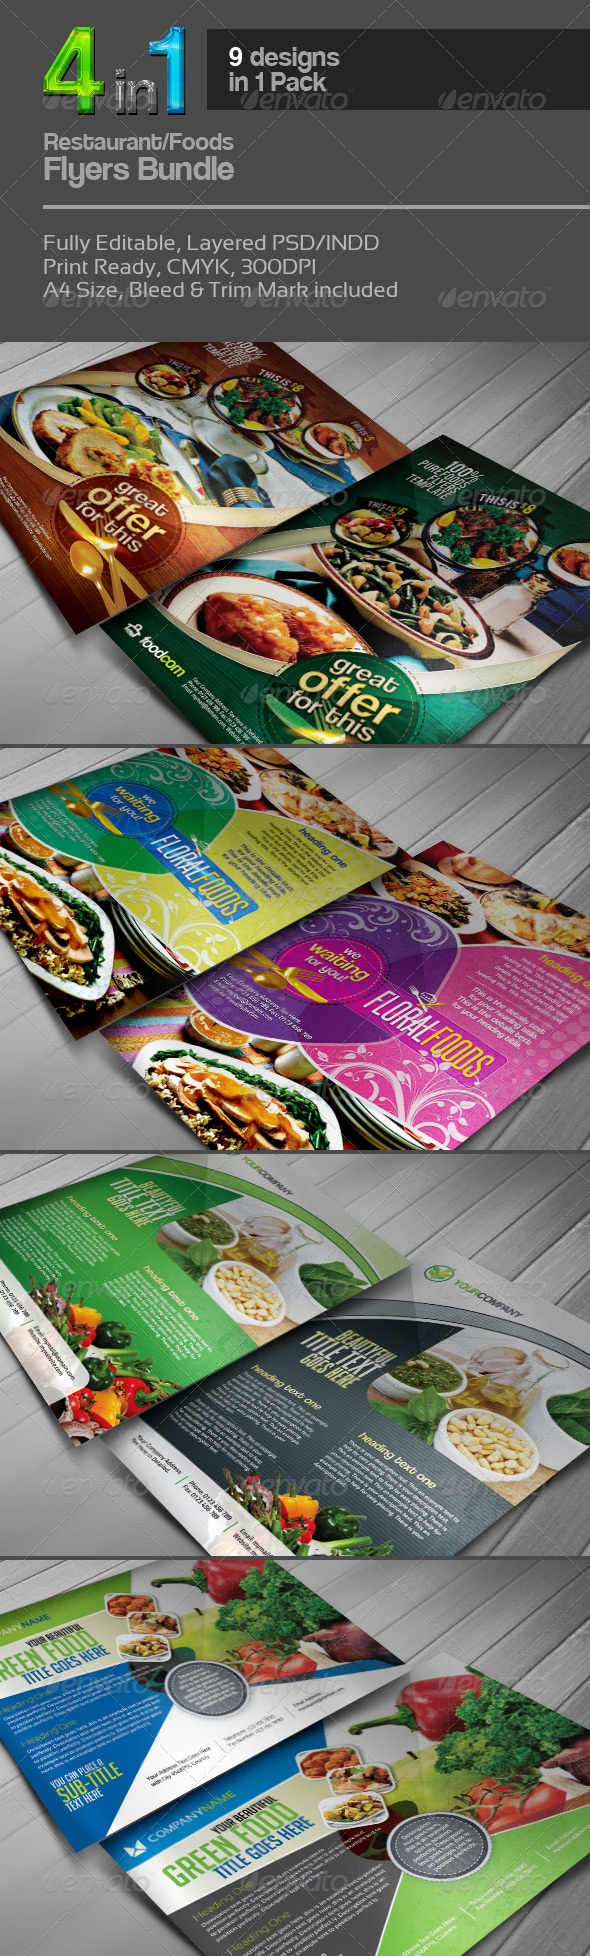 4 in 1 Restaurant Flyers Bundle v.1 - Restaurant Flyers